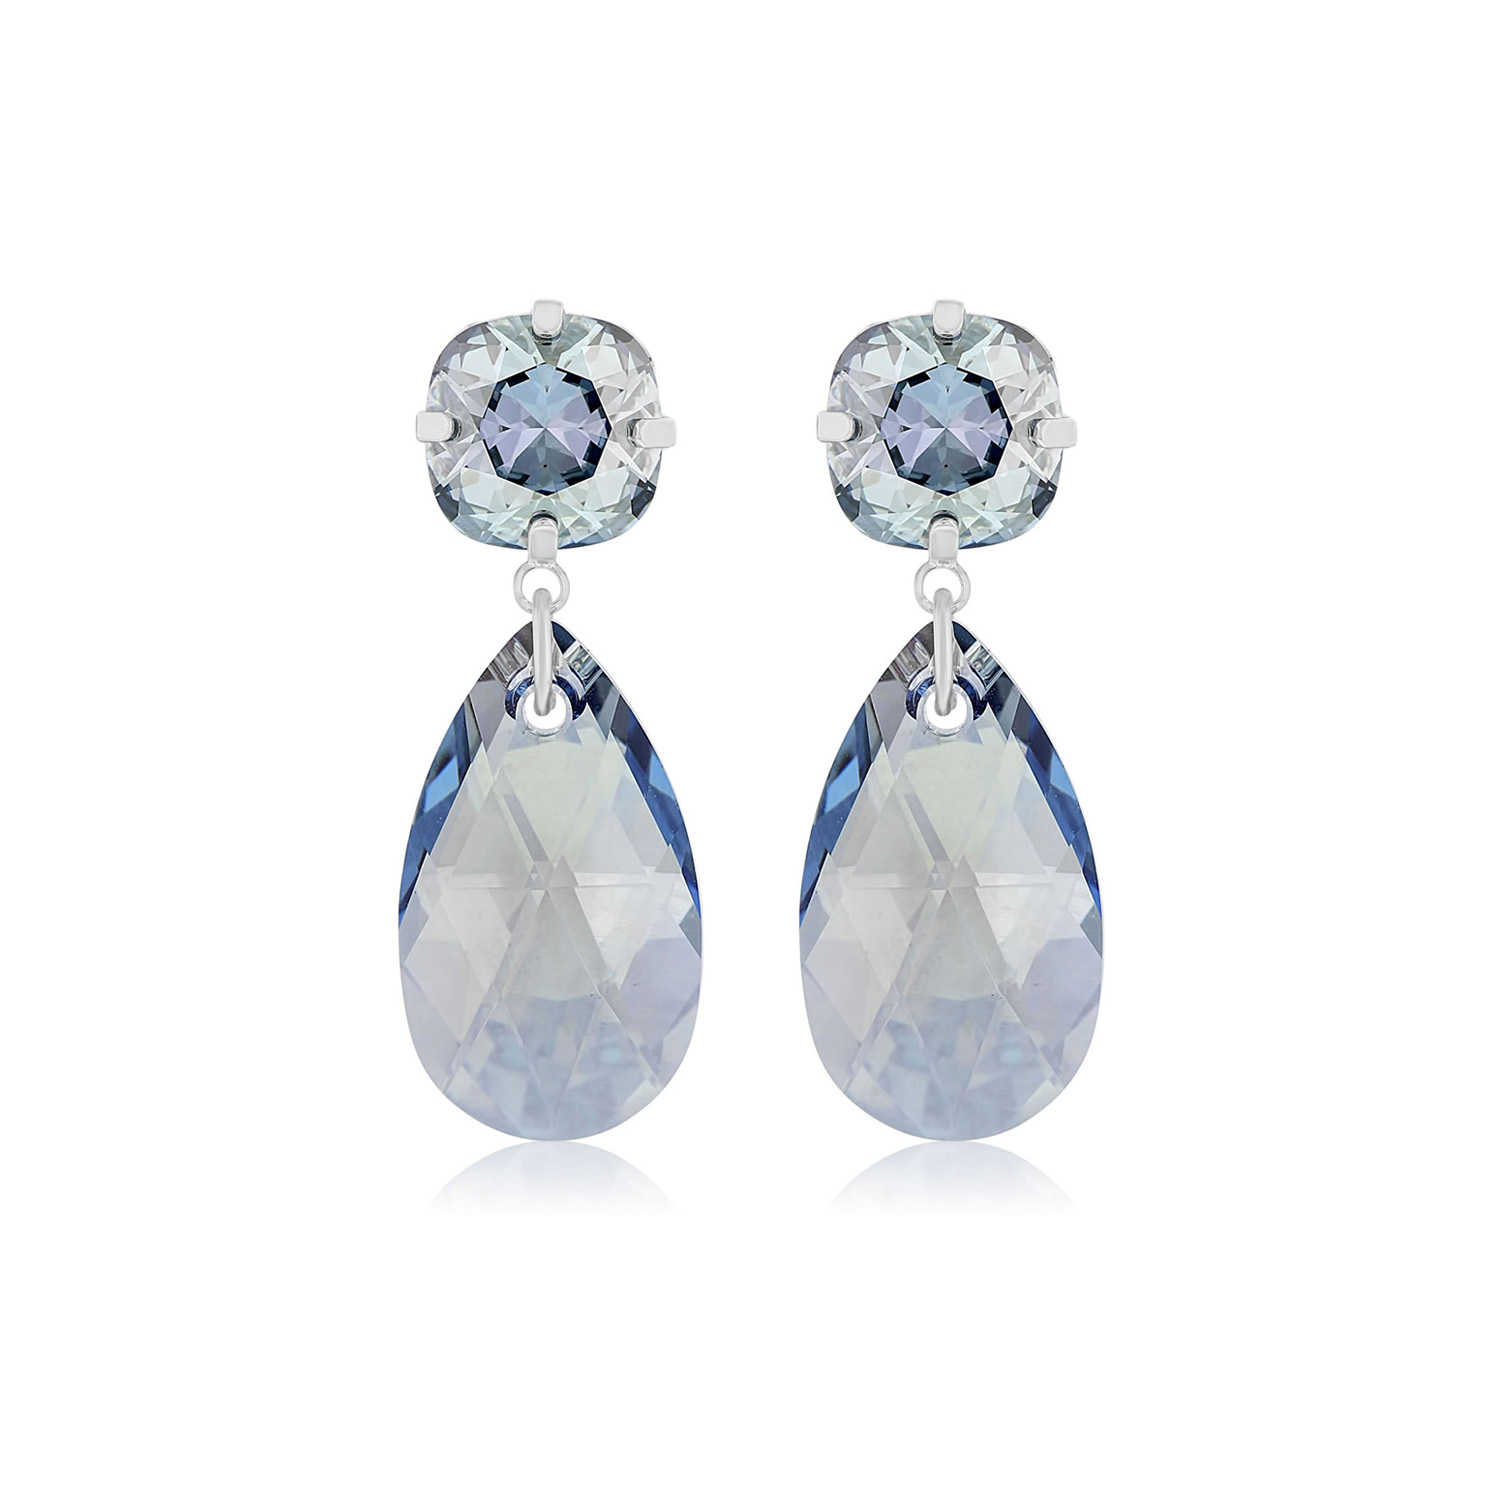 Glitz Glam Blue Diamontrigue Jewelry: Double Glamour Earrings Blue Silver